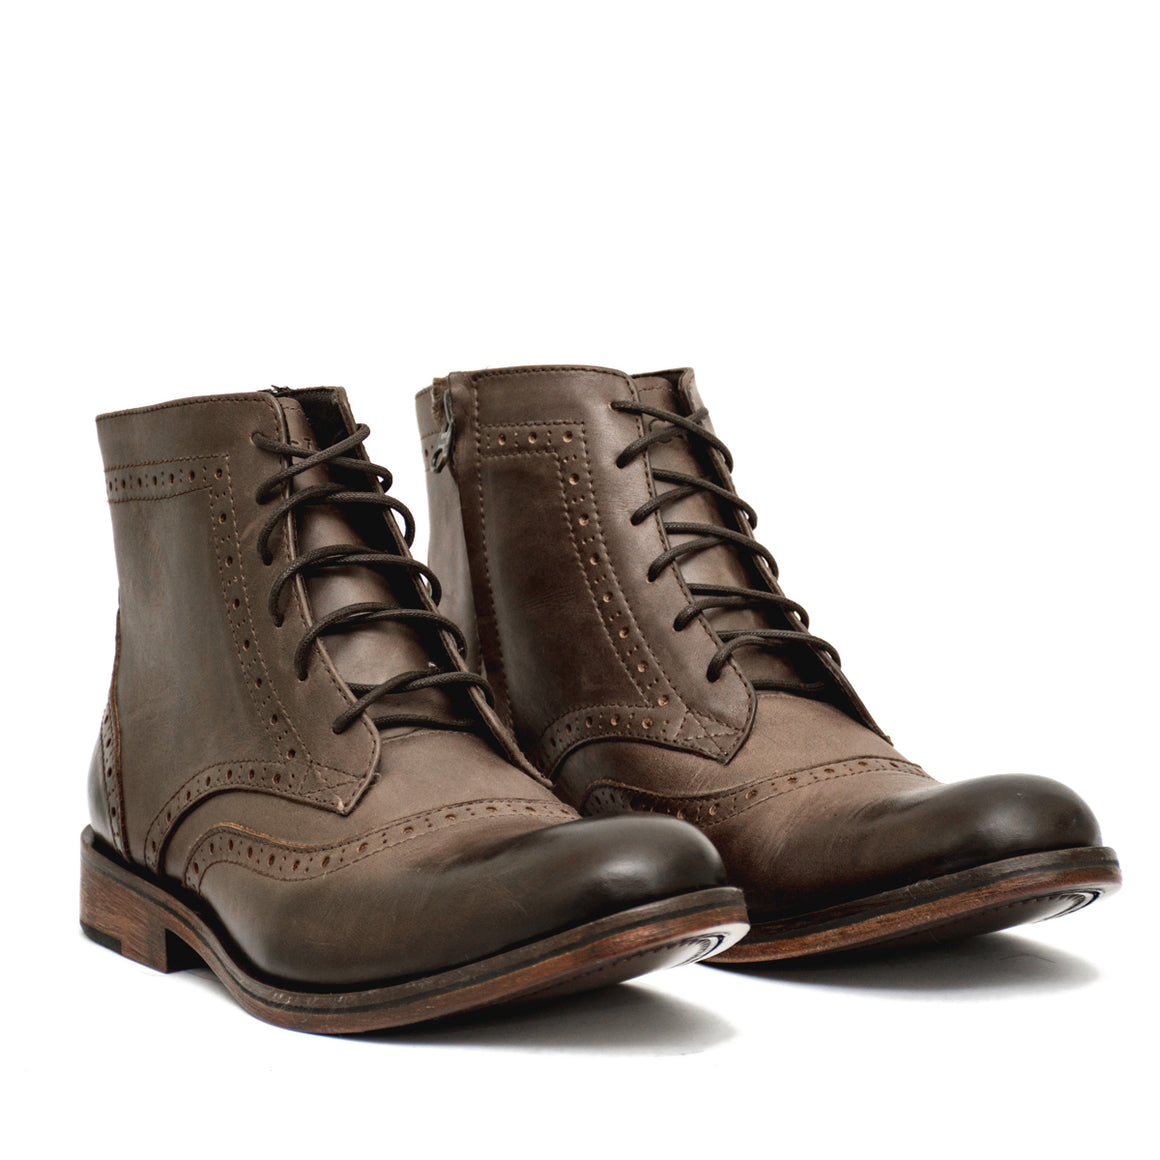 PERKS! Urbano Frank - leather boots